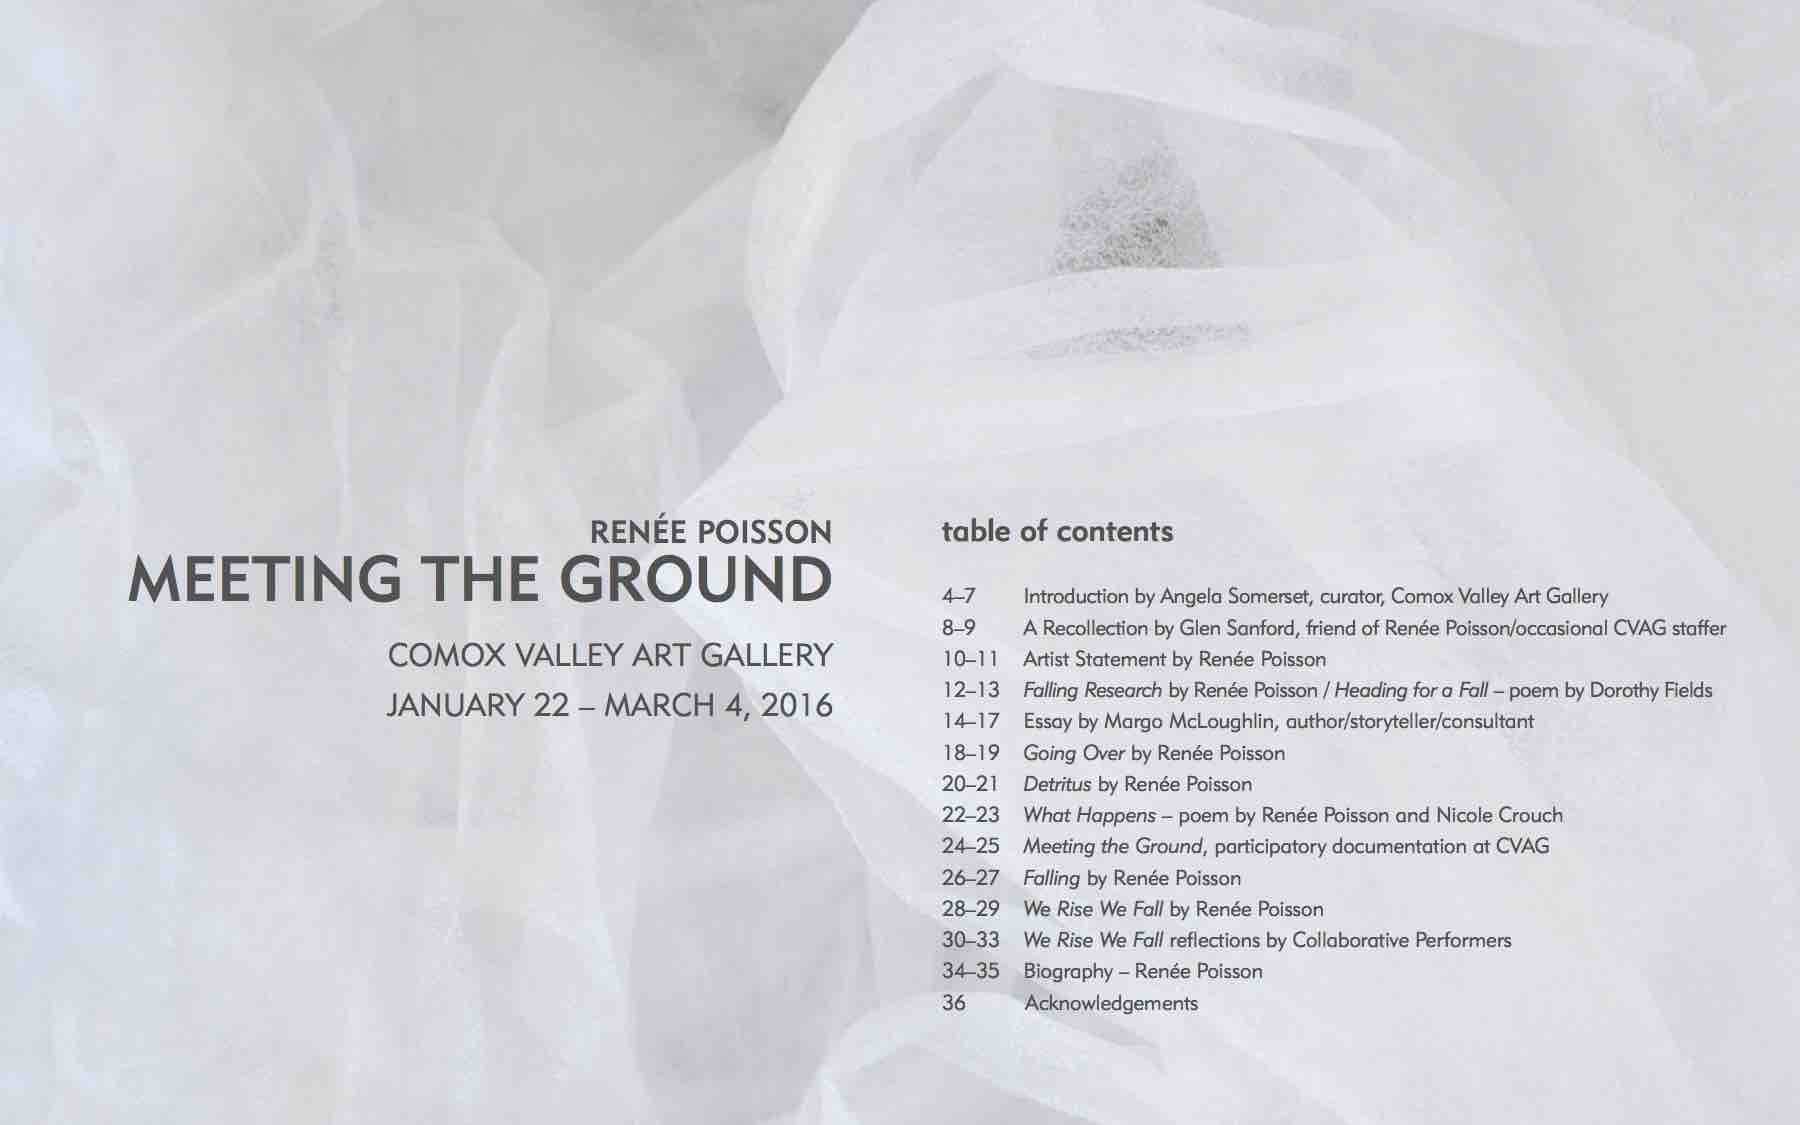 meeting-the-ground-publication 05a